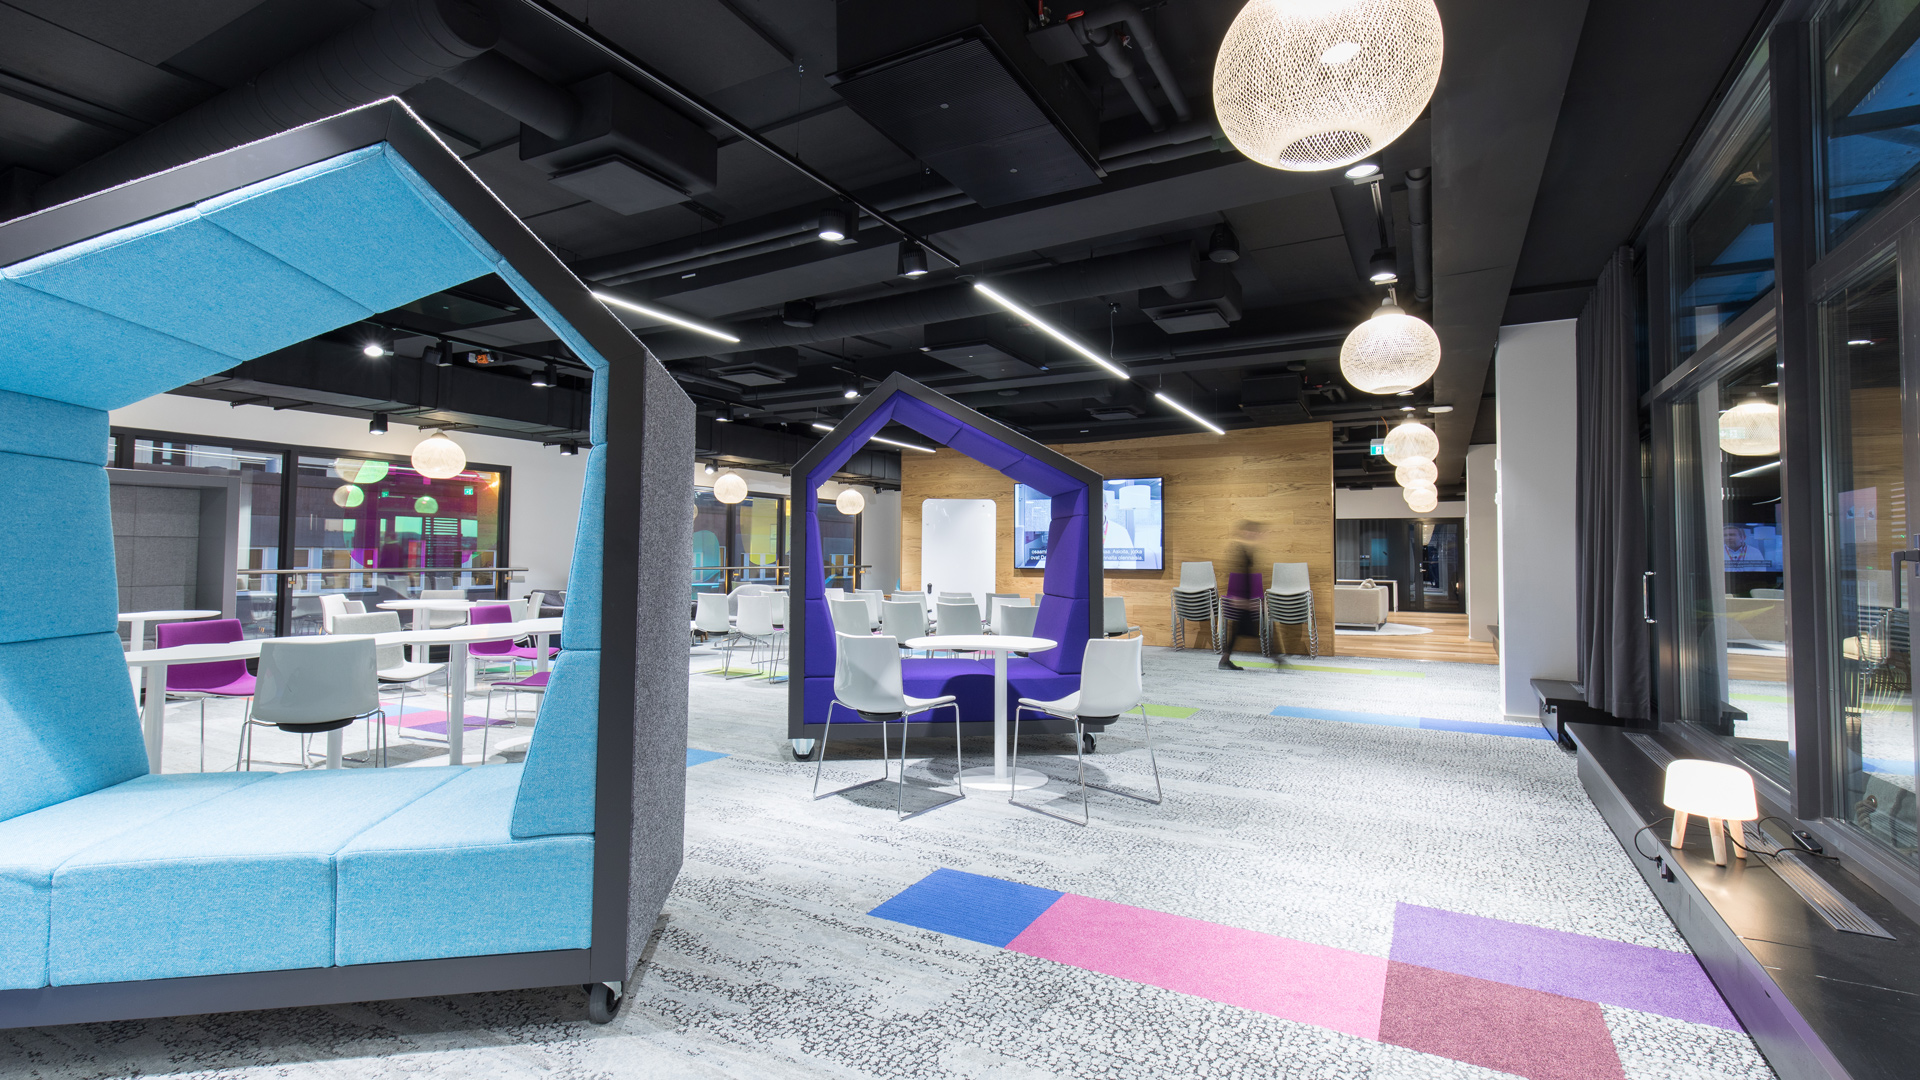 Telia-Finland-Headquarters-Teollisuuskatu-GI-Project-5